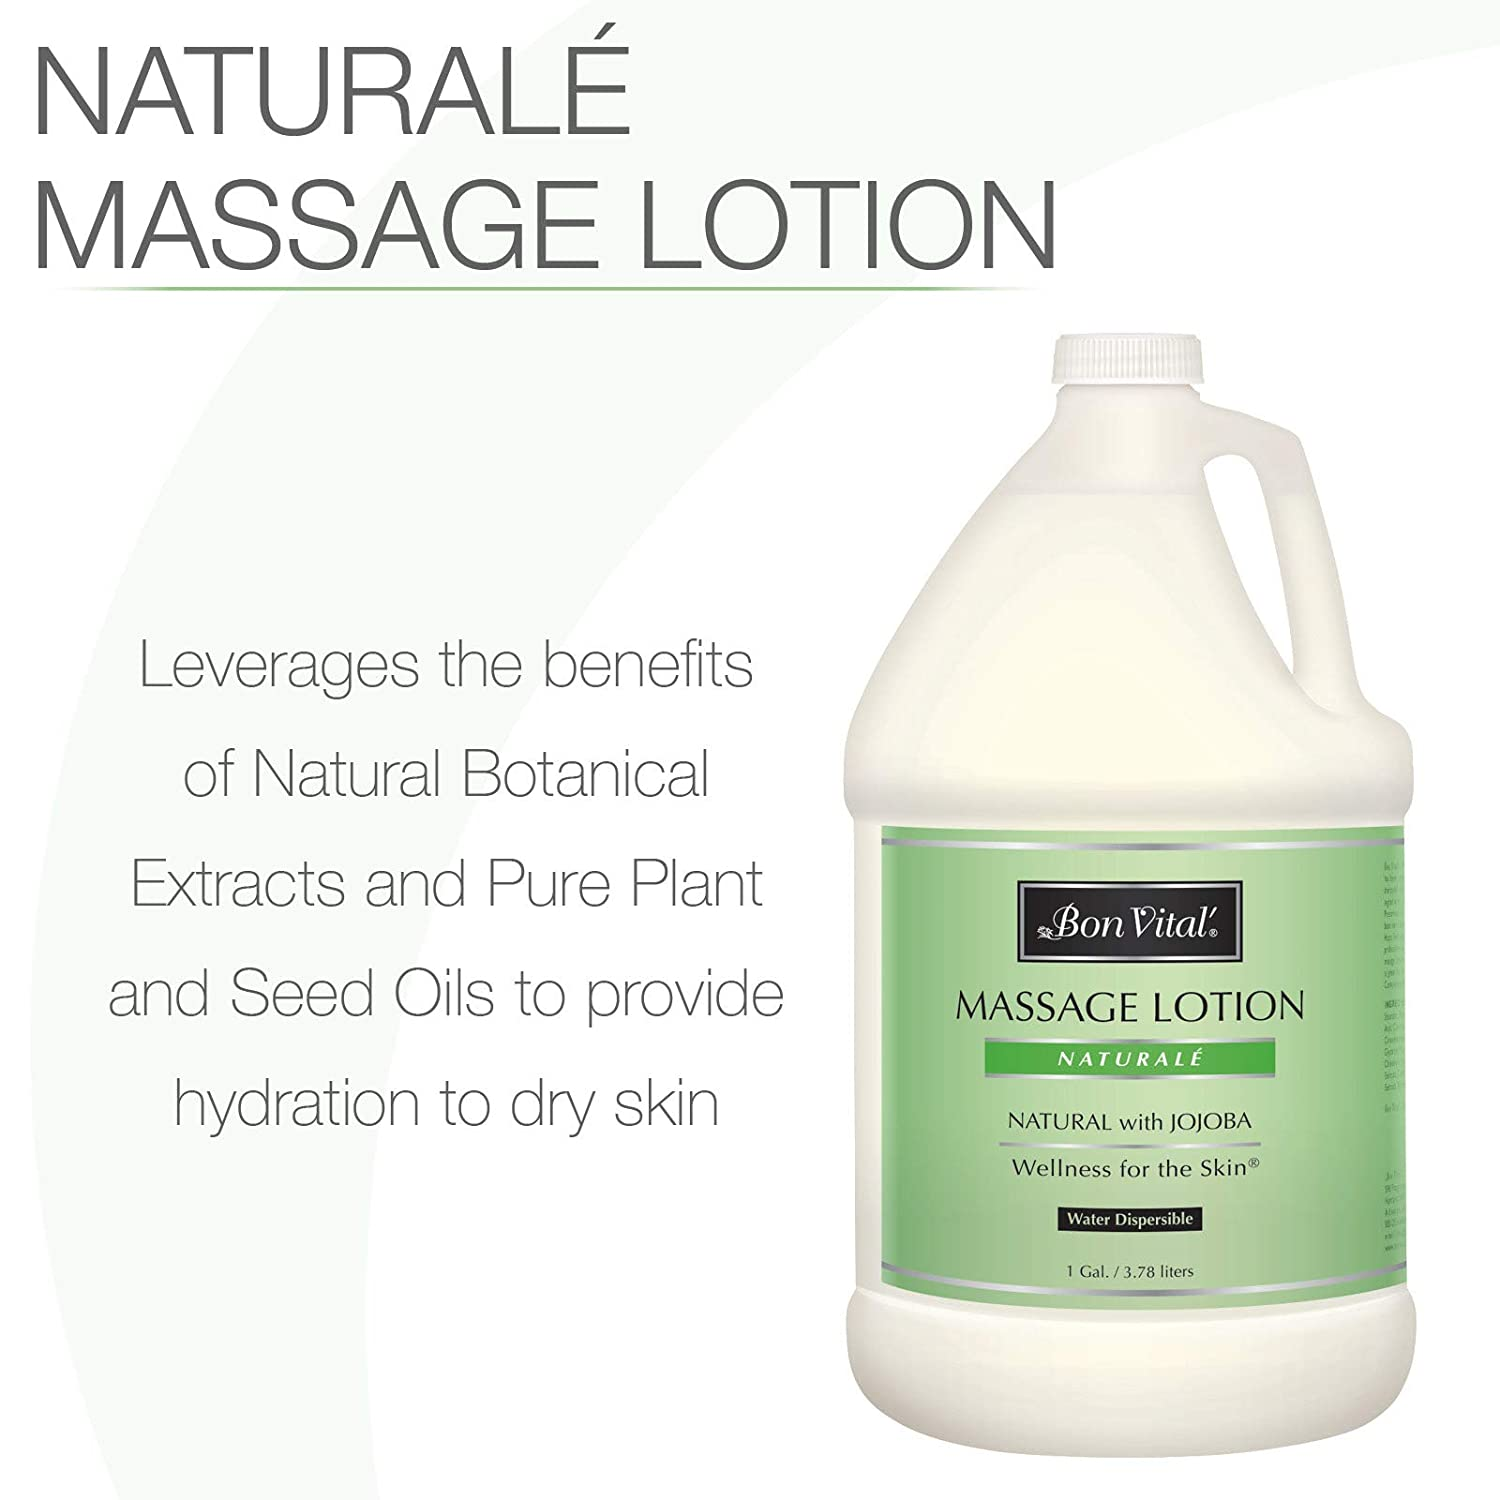 Bon Vital' Naturale Massage Lotion Made with Natural Ingredients for an Earth-Friendly & Relaxing Massage, All Natural Moisturizer, Relieves Muscle Soreness and Increases Circulation, 1 Gallon Bottle: Industrial & Scientific